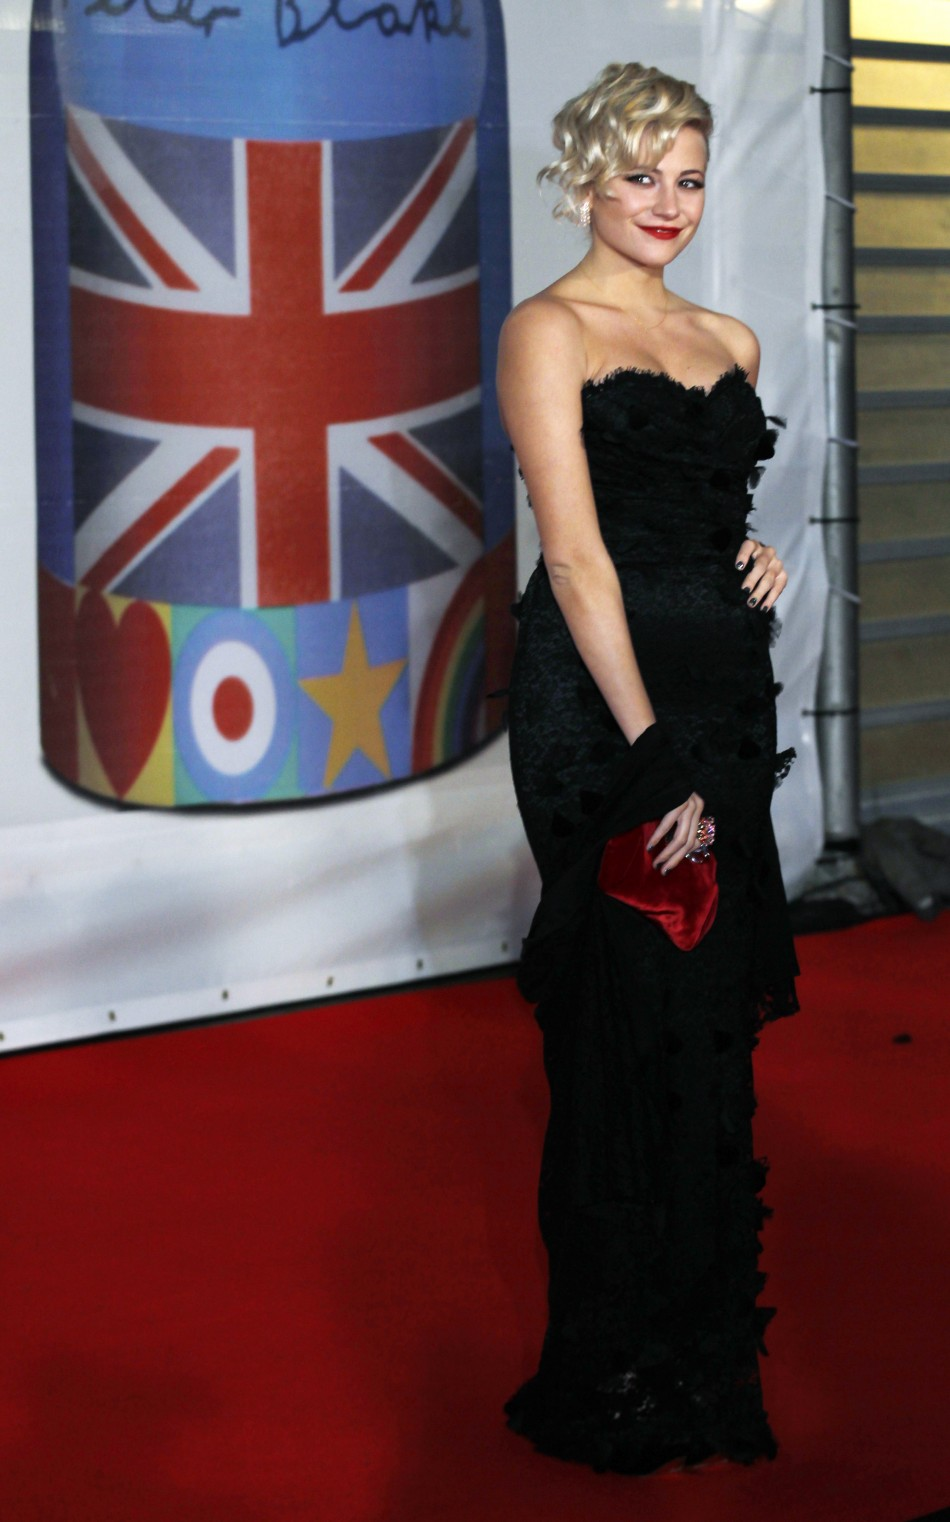 British singer Pixie Lott arrives for the BRIT music awards at the O2 Arena in London